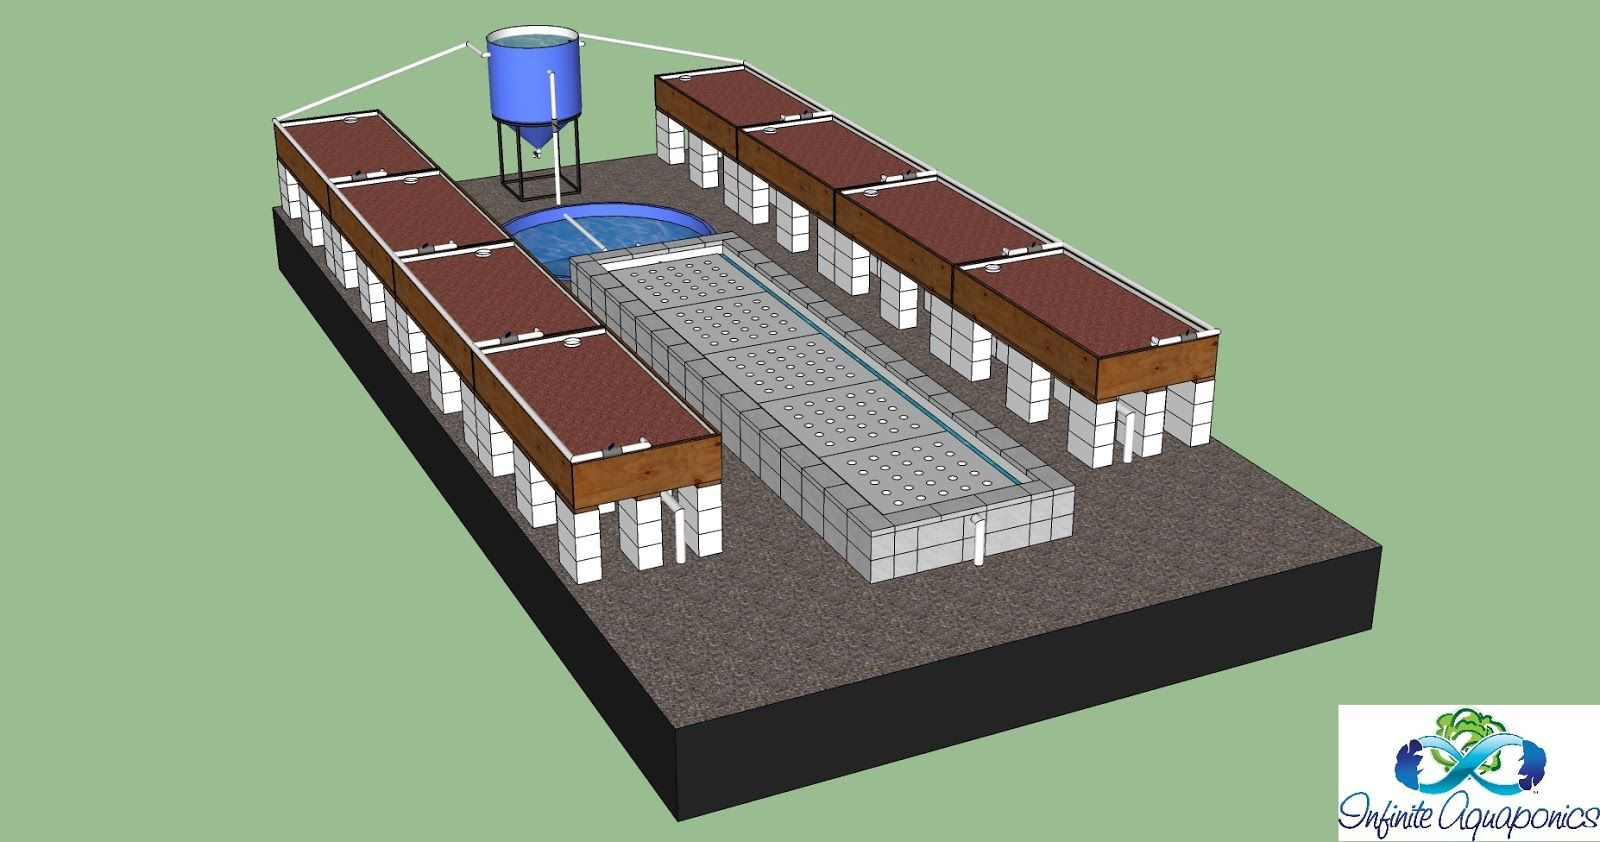 Commercial Greenhouse Aquaponics System Designs Visit My